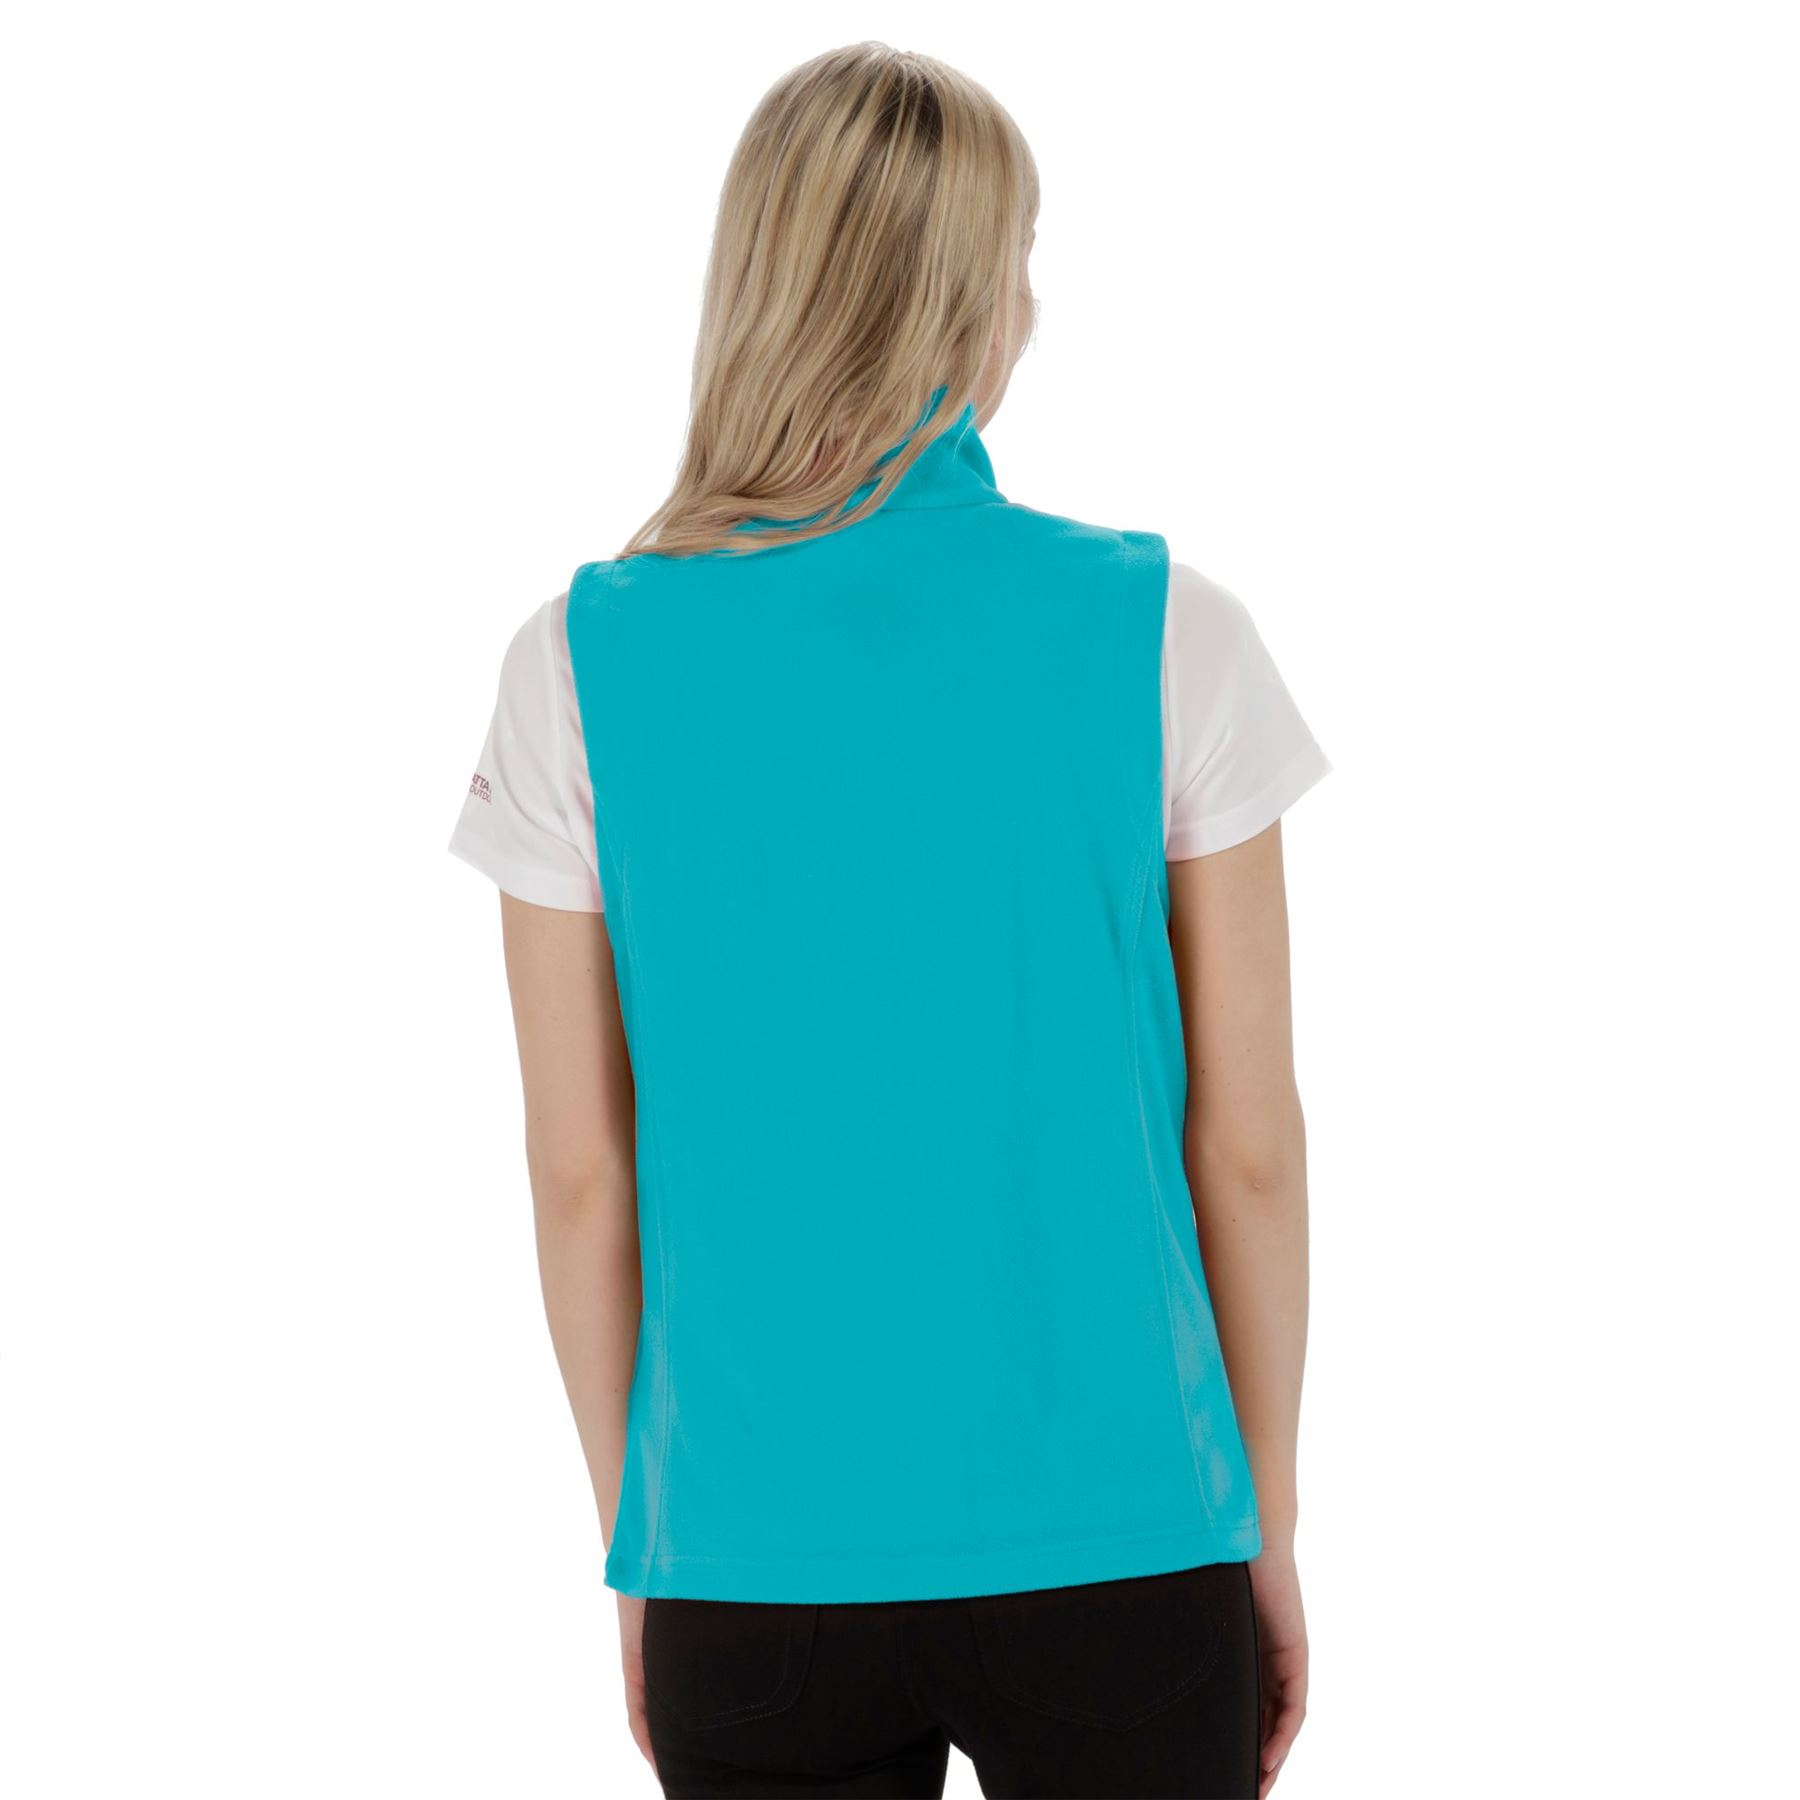 Regatta-Sweetness-II-RWB053-Full-Zip-Womens-Sleeveless-Bodywarmer thumbnail 7